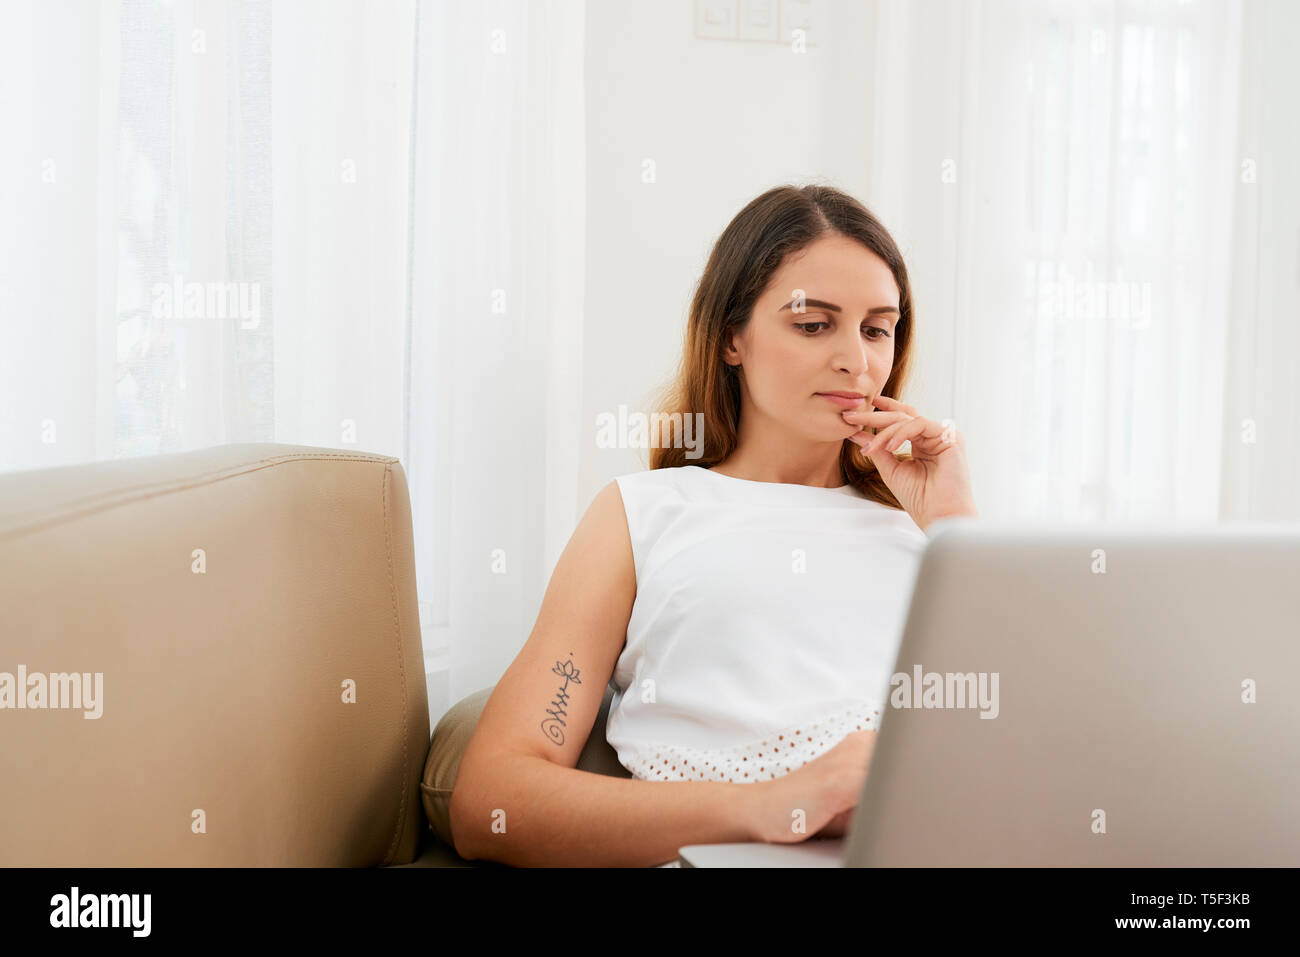 Pensive woman working on laptop - Stock Image